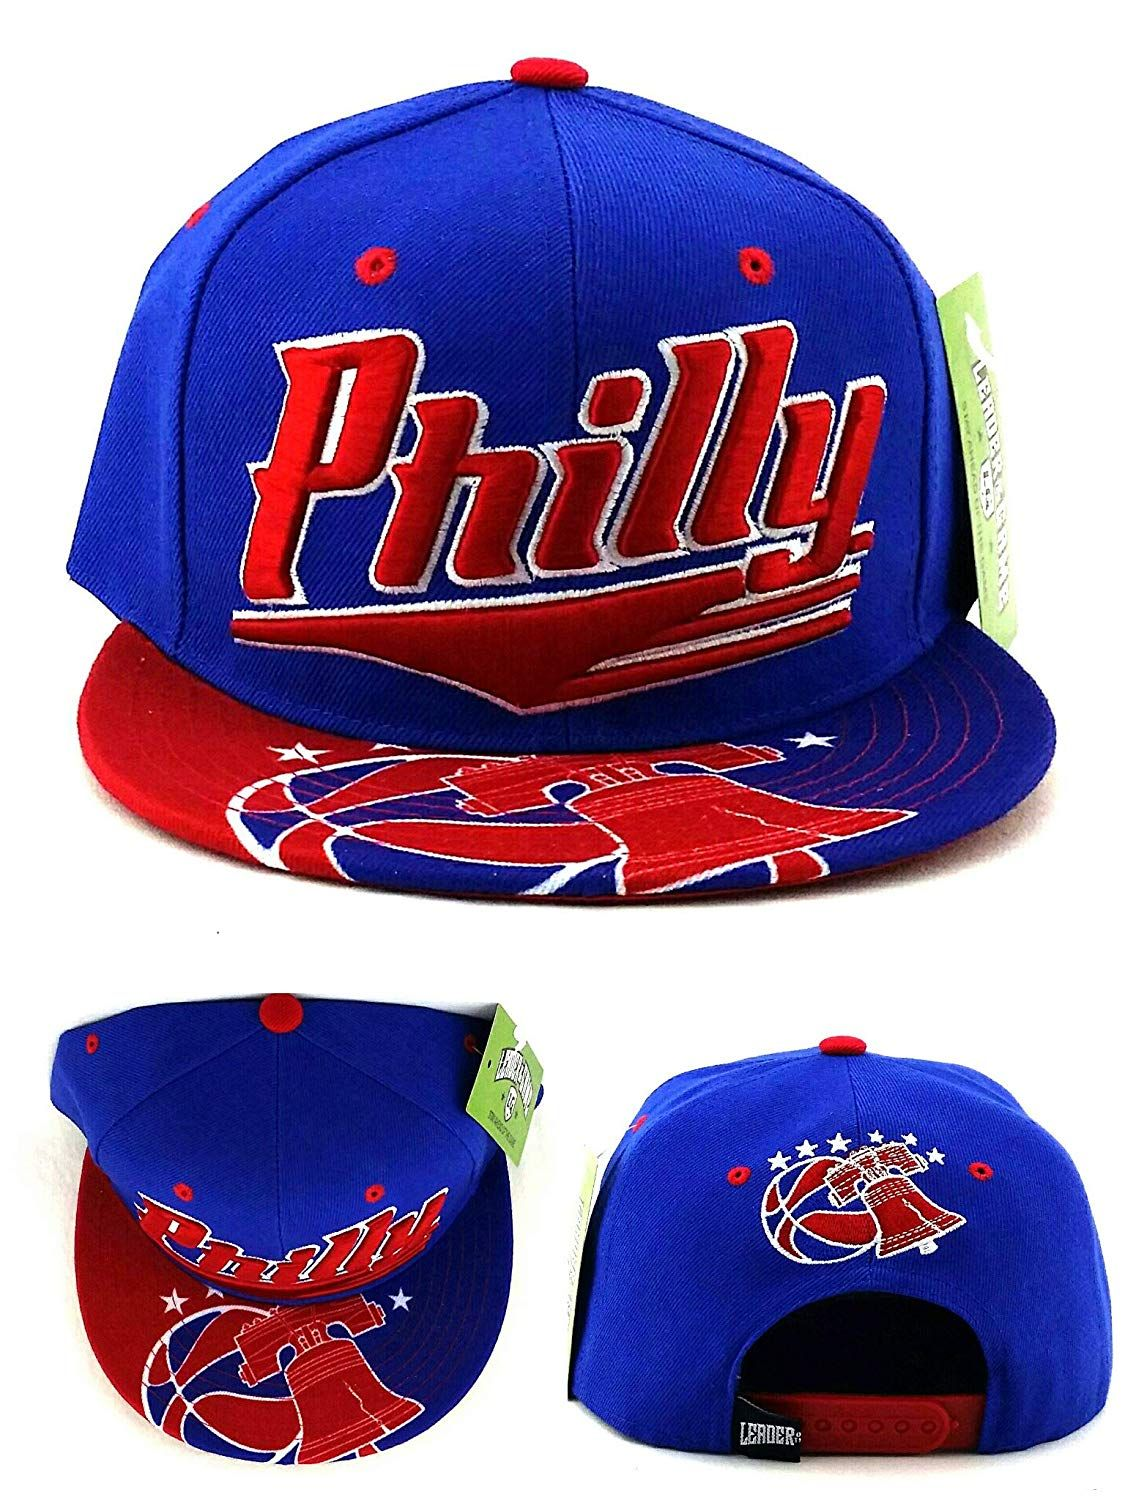 ae99306f1a0 Legend of the Game Philadelphia Philly Leader Liberty Bell Sixers 76ers  Colors Blue Red Era Snapback Hat